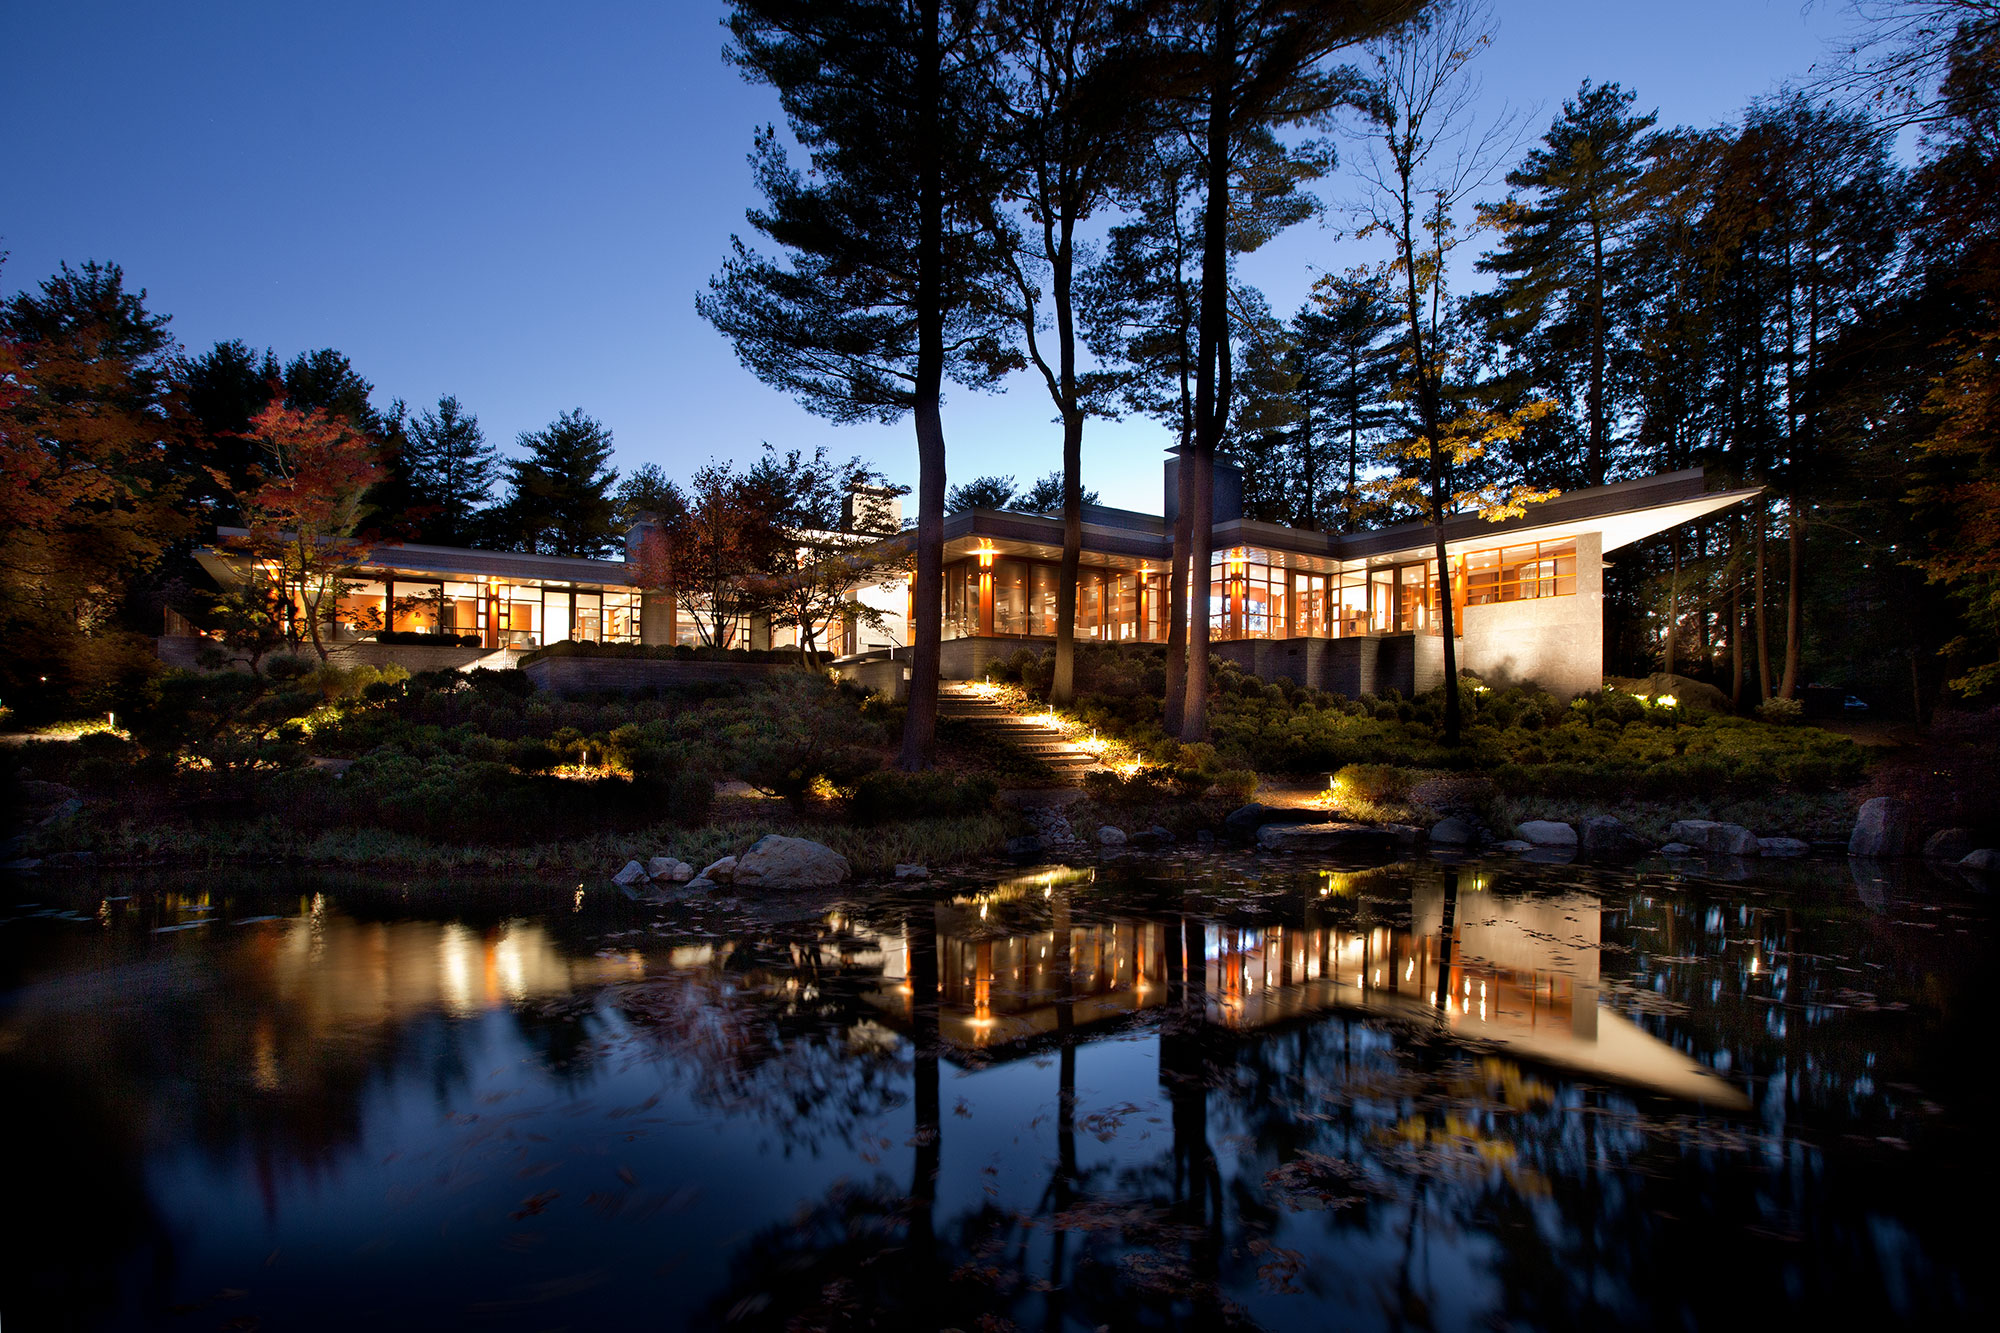 exterior of home across from a pond glowing at dusk